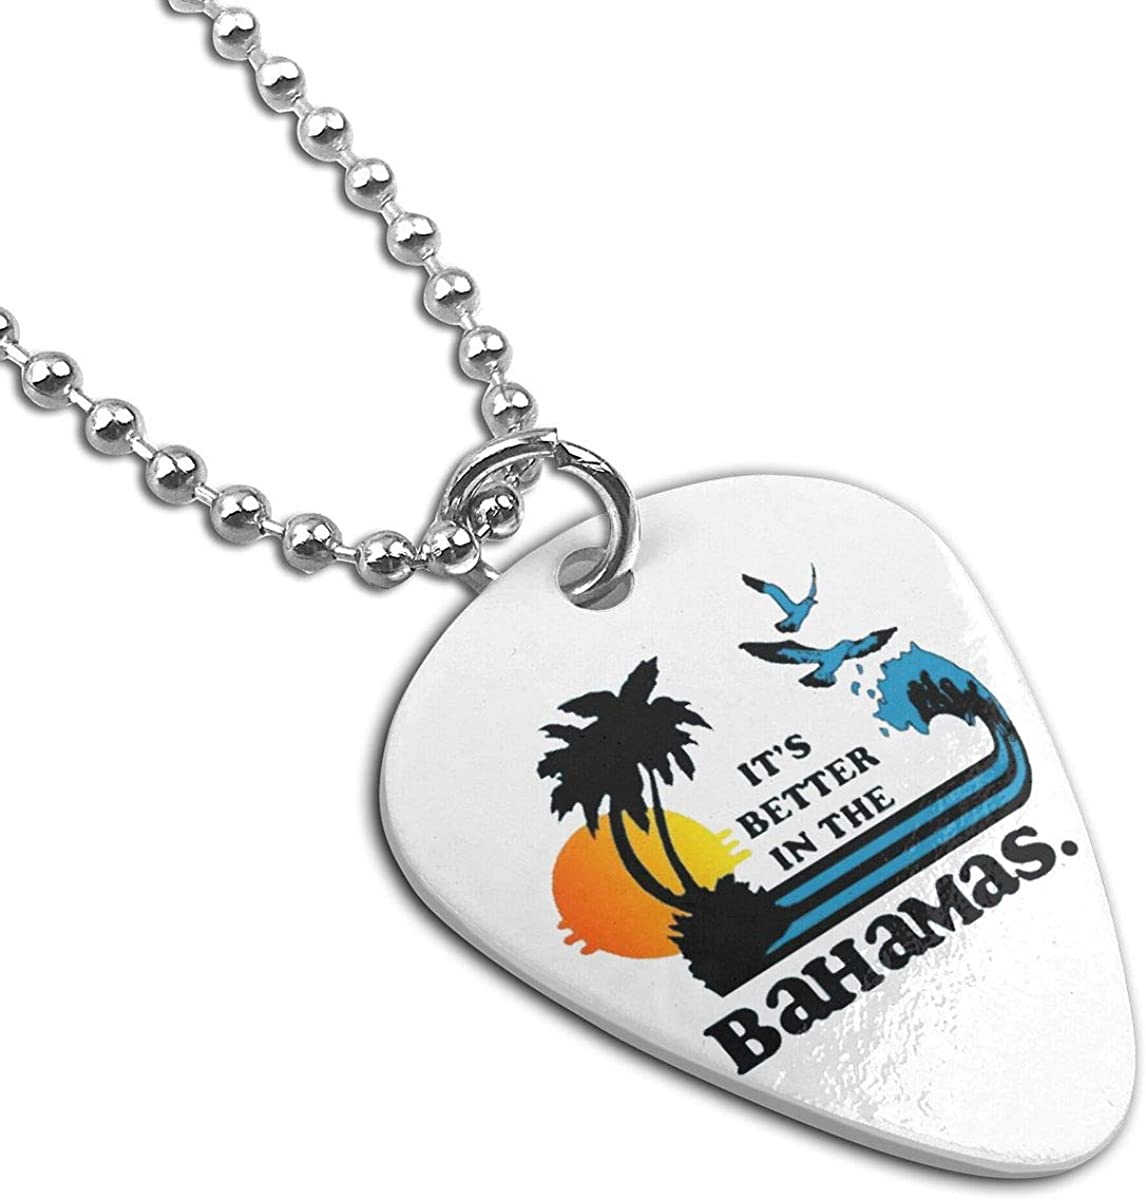 Its Better In The Bahamas Custom Guitar Pick Pendant Necklace Keychain